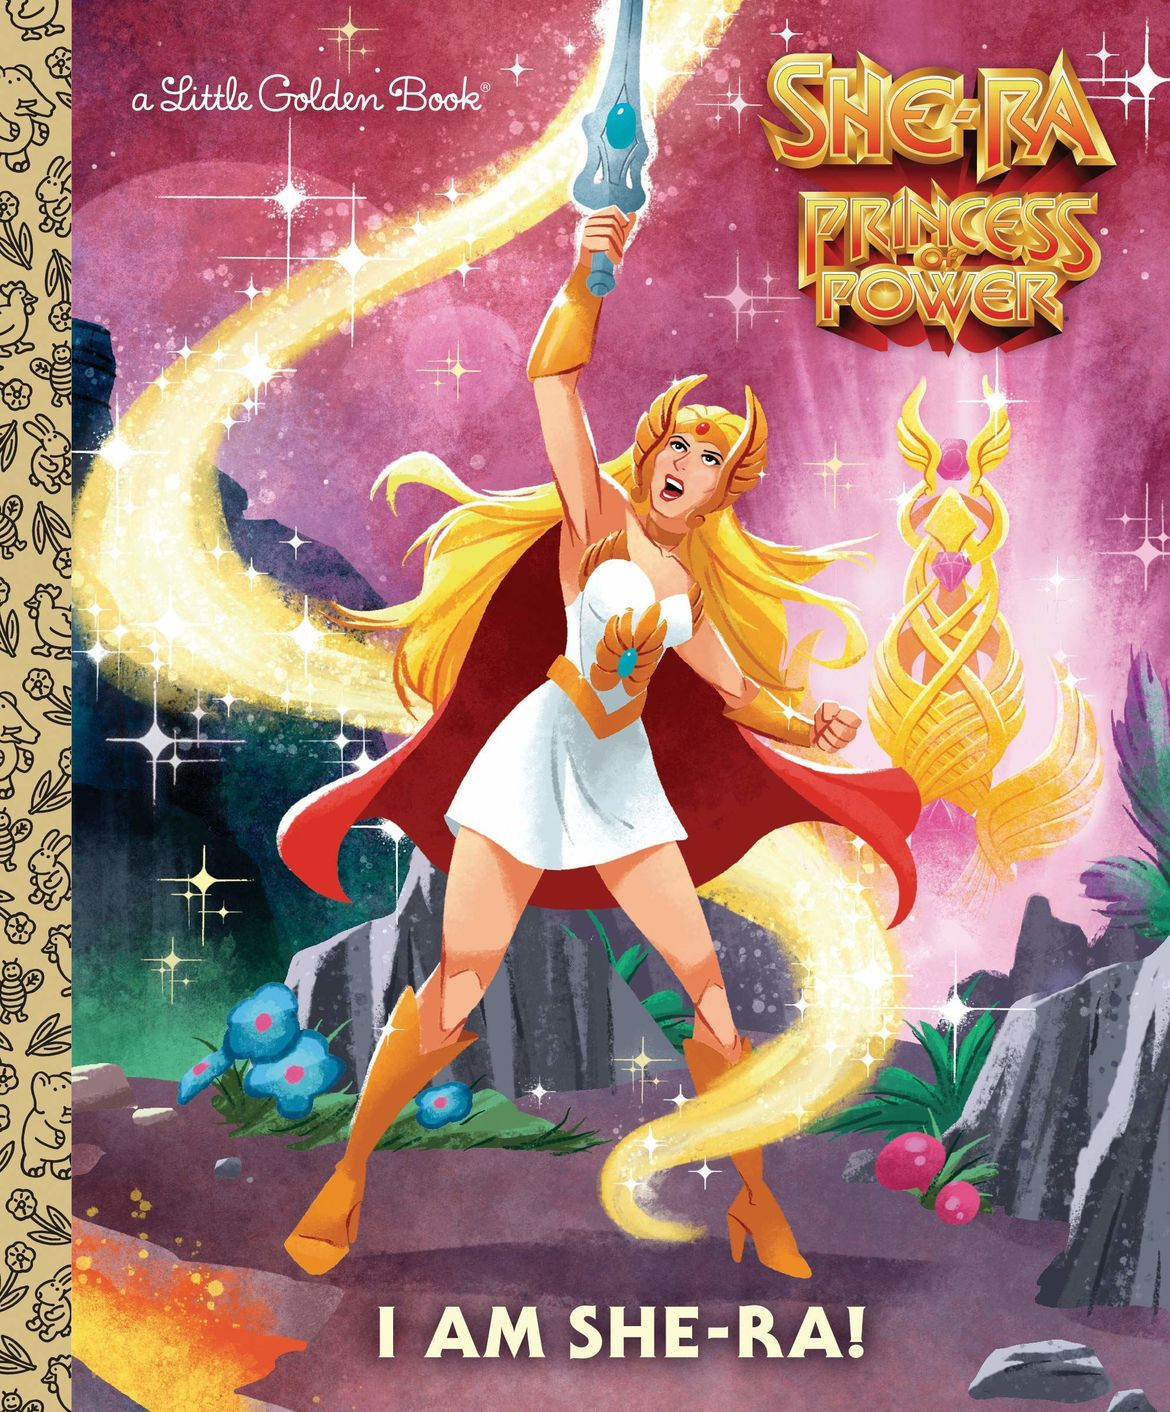 She-Ra little golden book